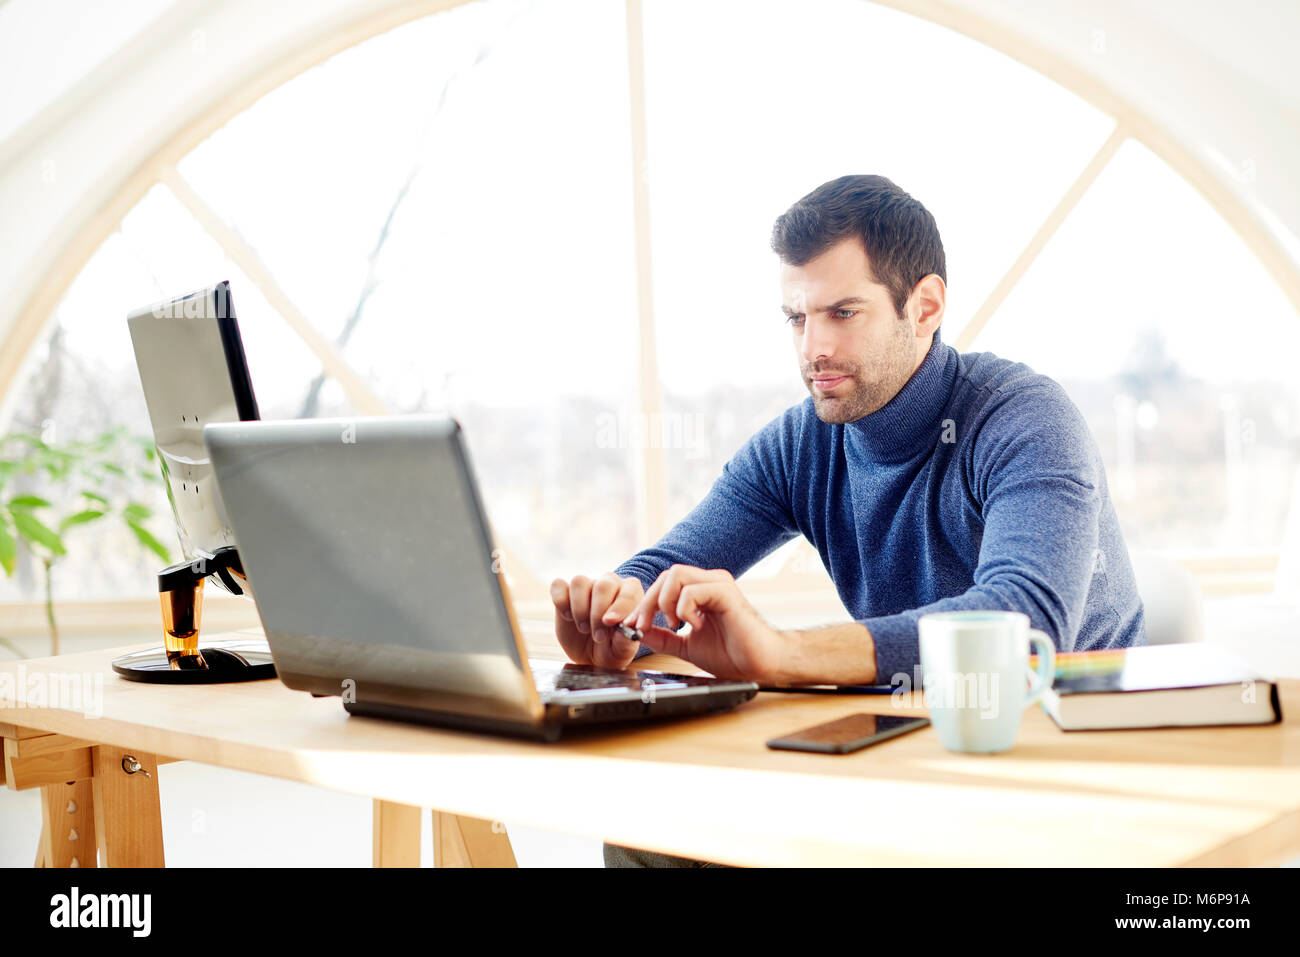 Portrait of young casual businessman using laptop while working at the office. - Stock Image